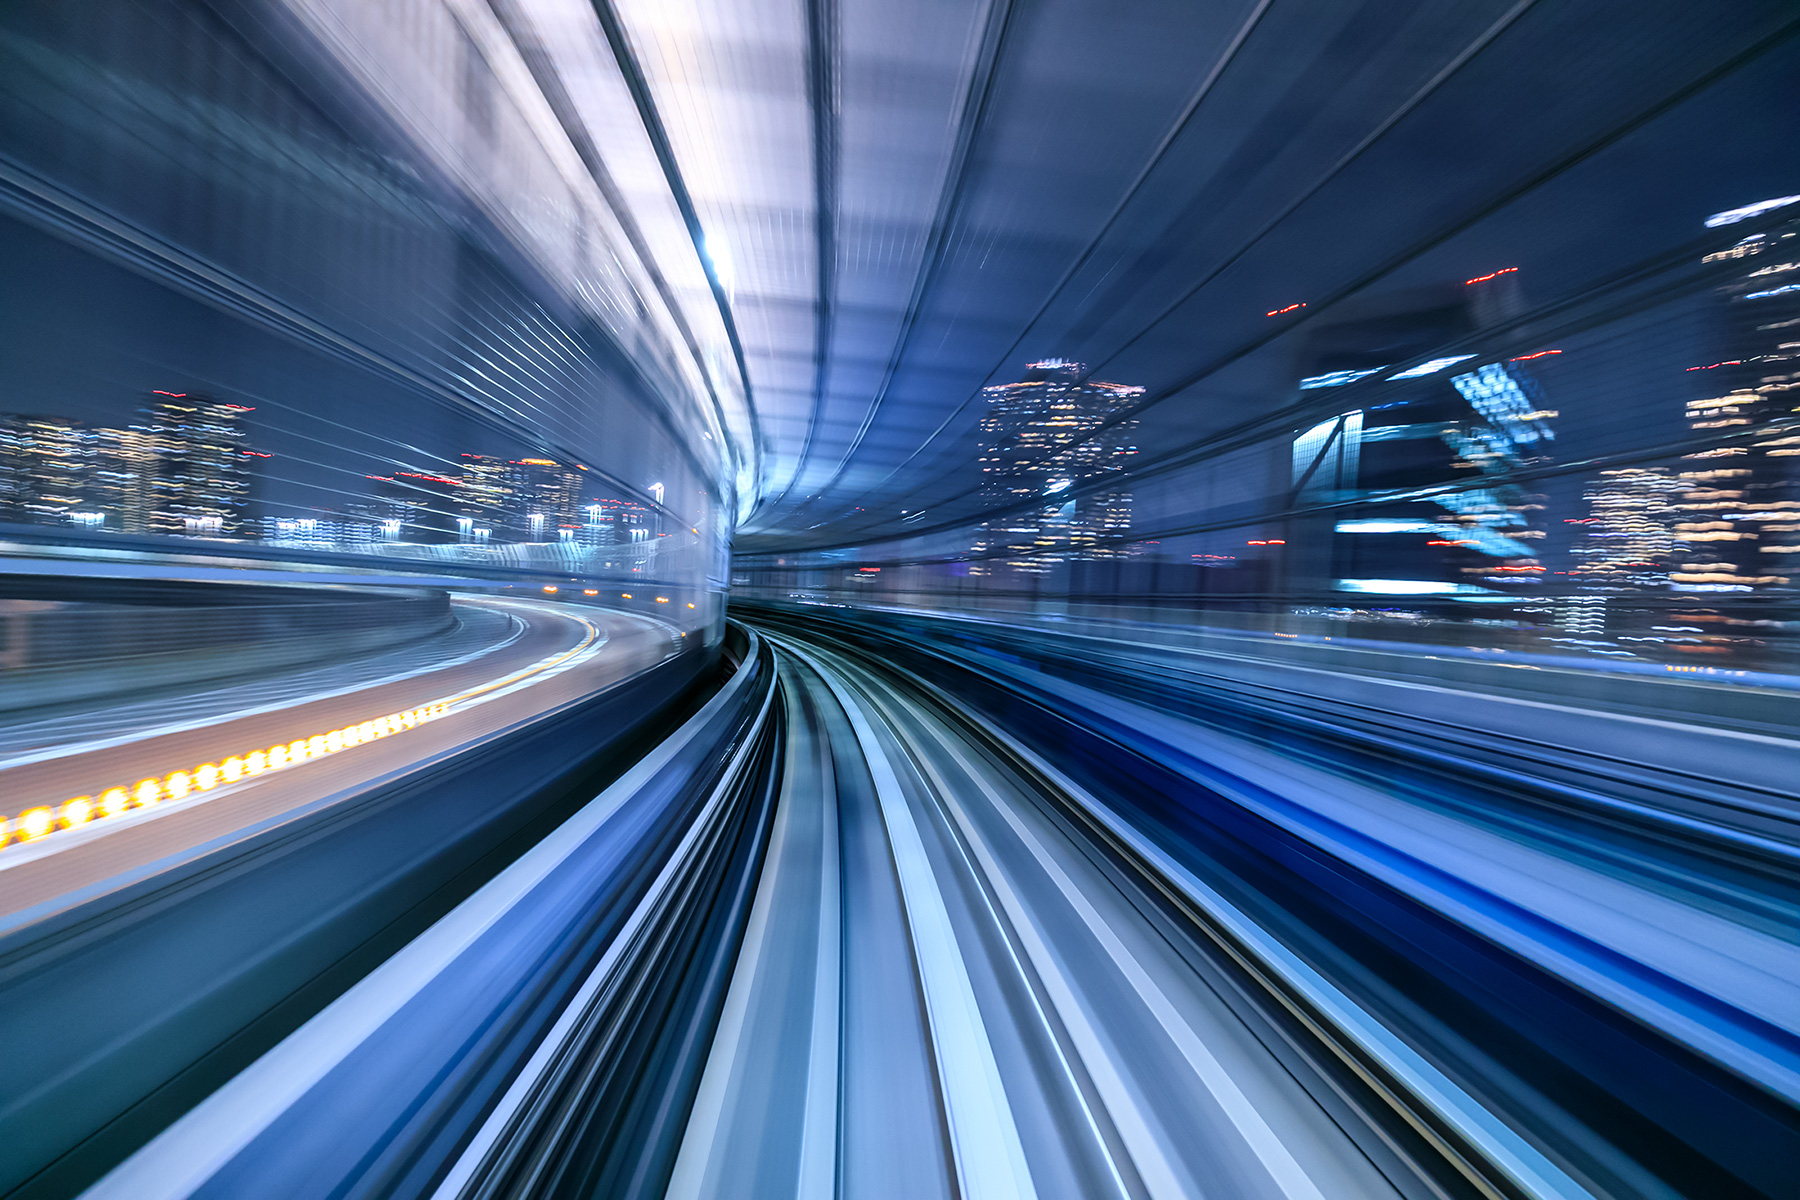 motion-blur-of-train-moving-inside-tunnel-in-tokyo-P736TFD